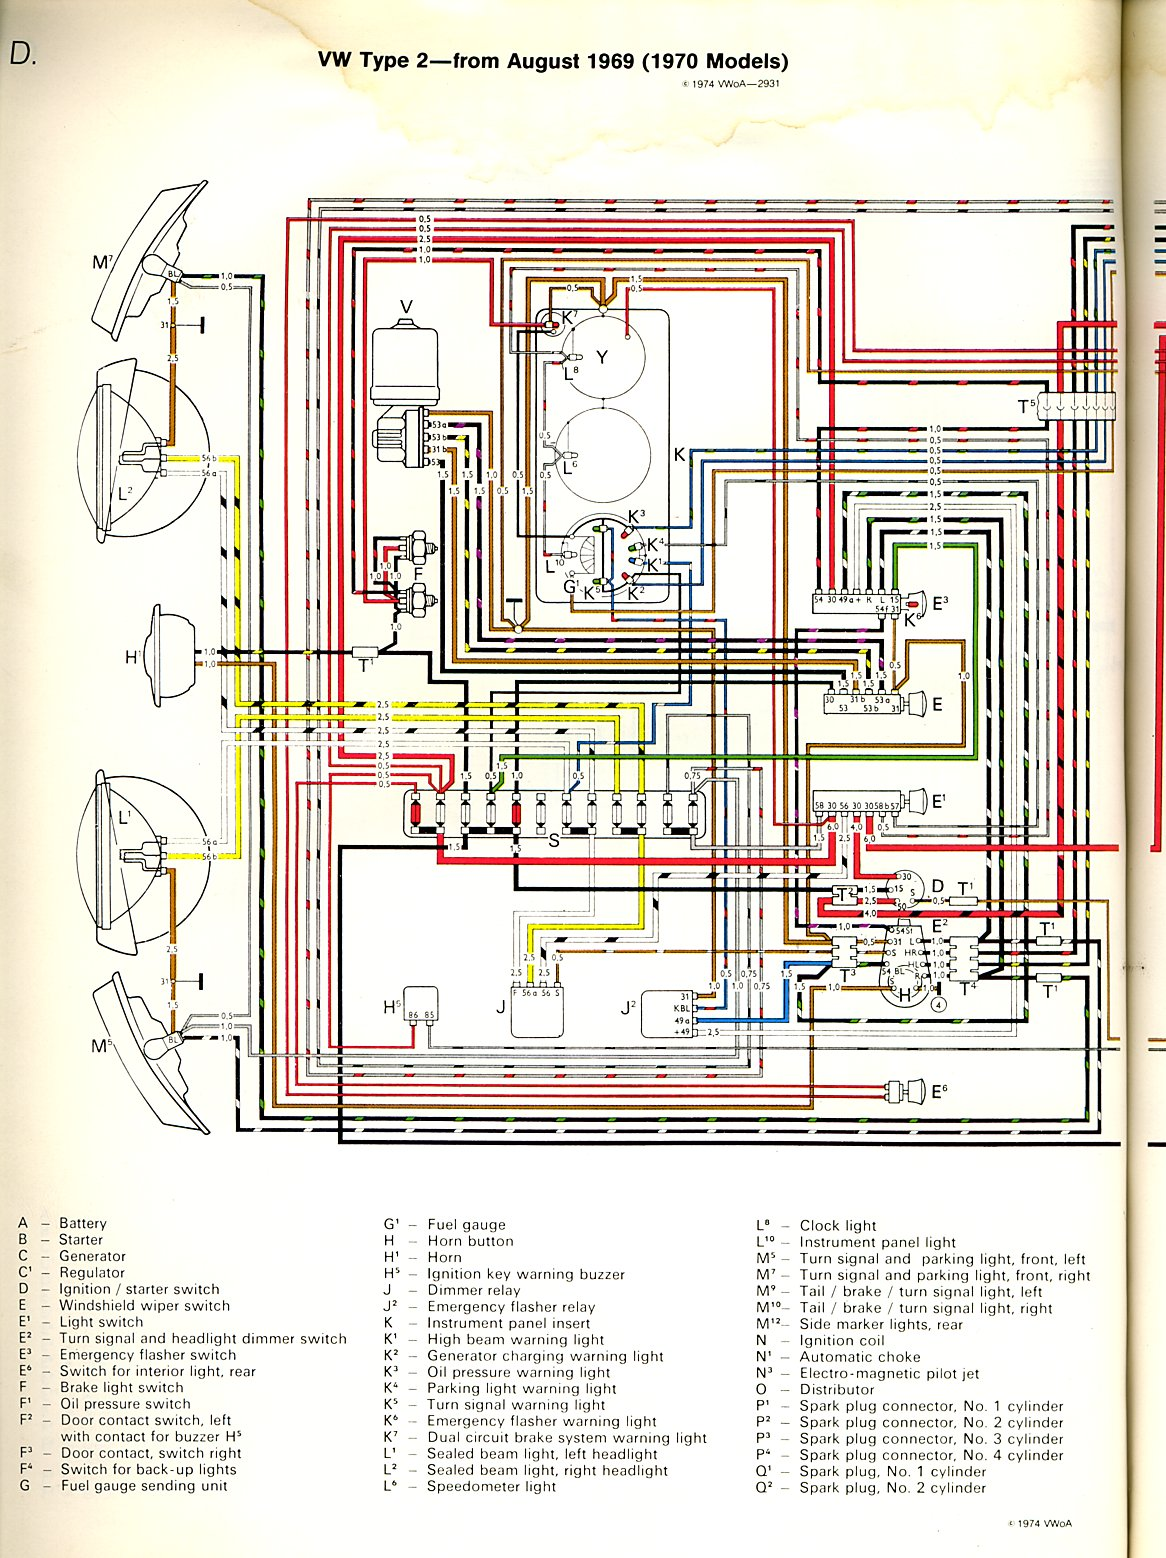 baybus_70a vw bus wiring diagram 1965 vw bus wiring diagram \u2022 wiring diagrams VW Alternator Hook Up at virtualis.co